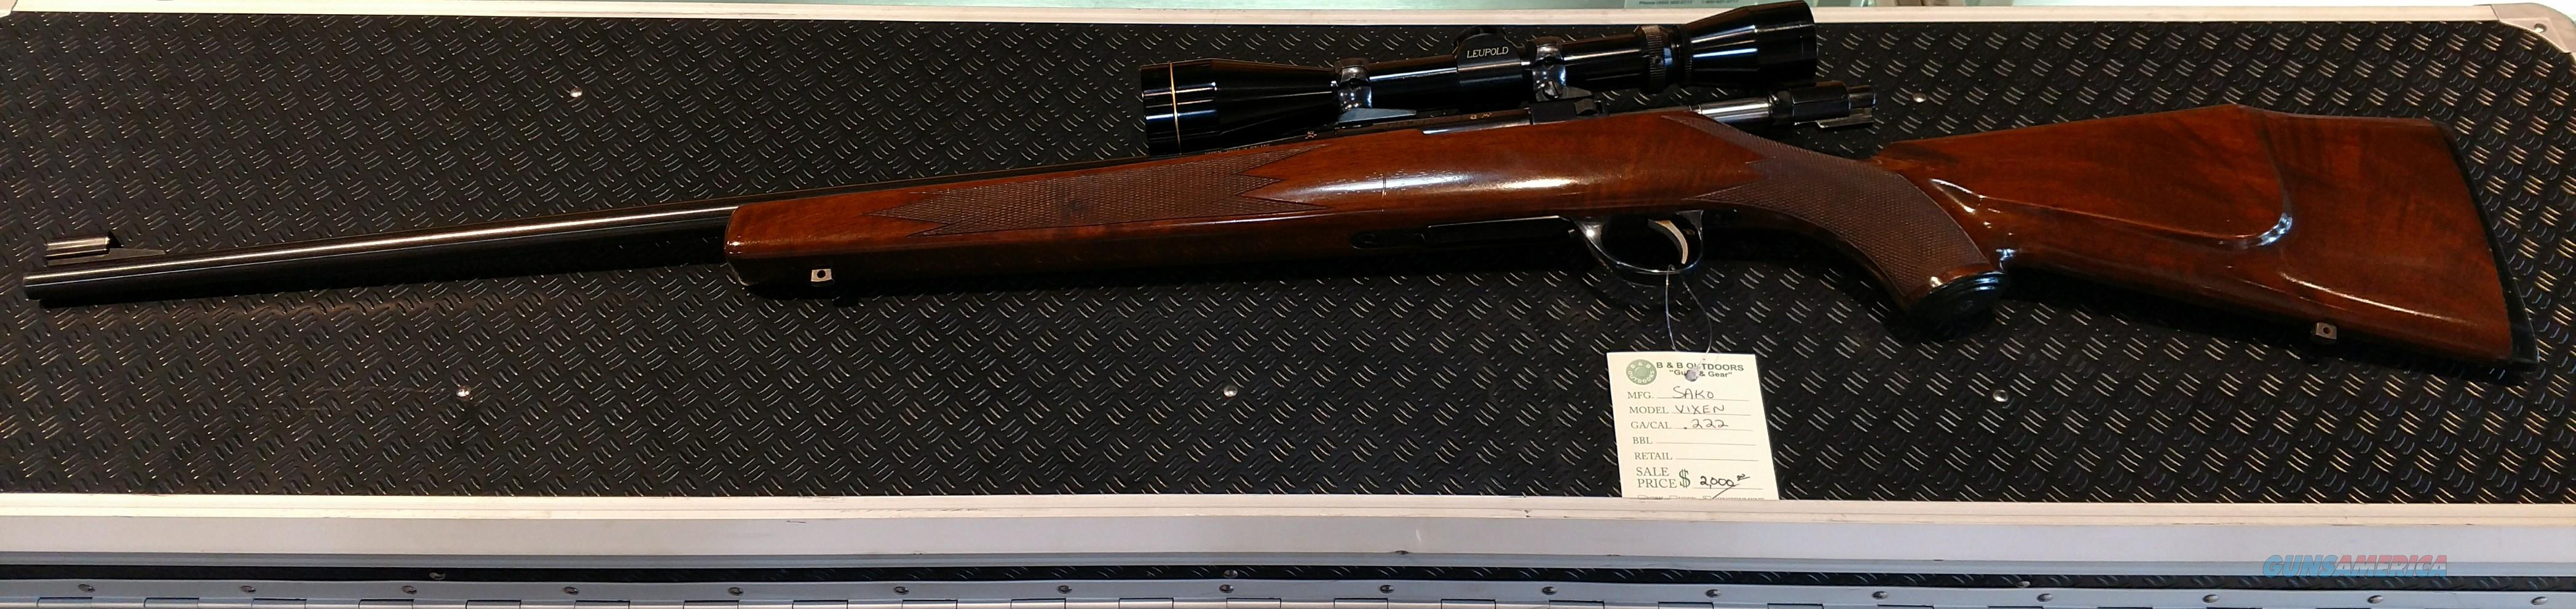 Sako L461 Vixen 222 Rem  Guns > Rifles > Sako Rifles > Other Bolt Action